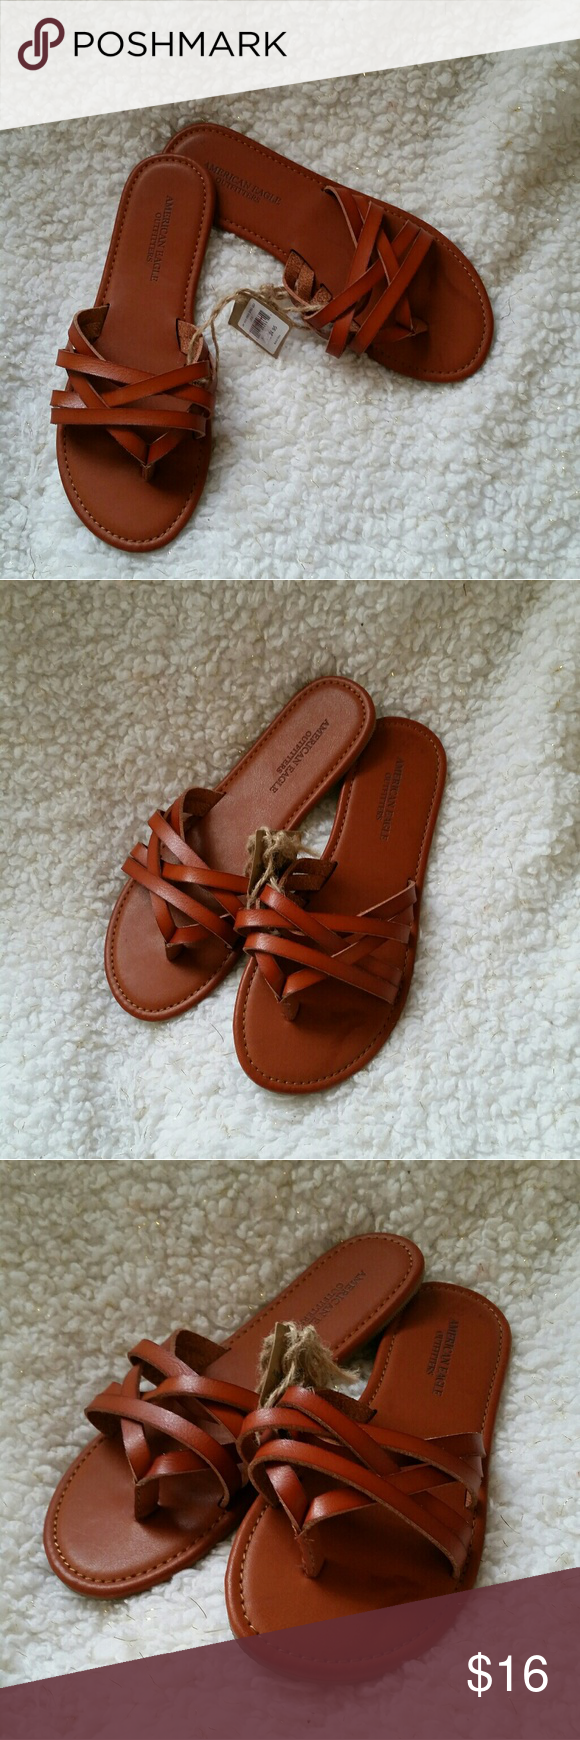 b87bff90c2ca New AEO sandals Brand new sandals Size 6 American Eagle Outfitters Shoes  Sandals